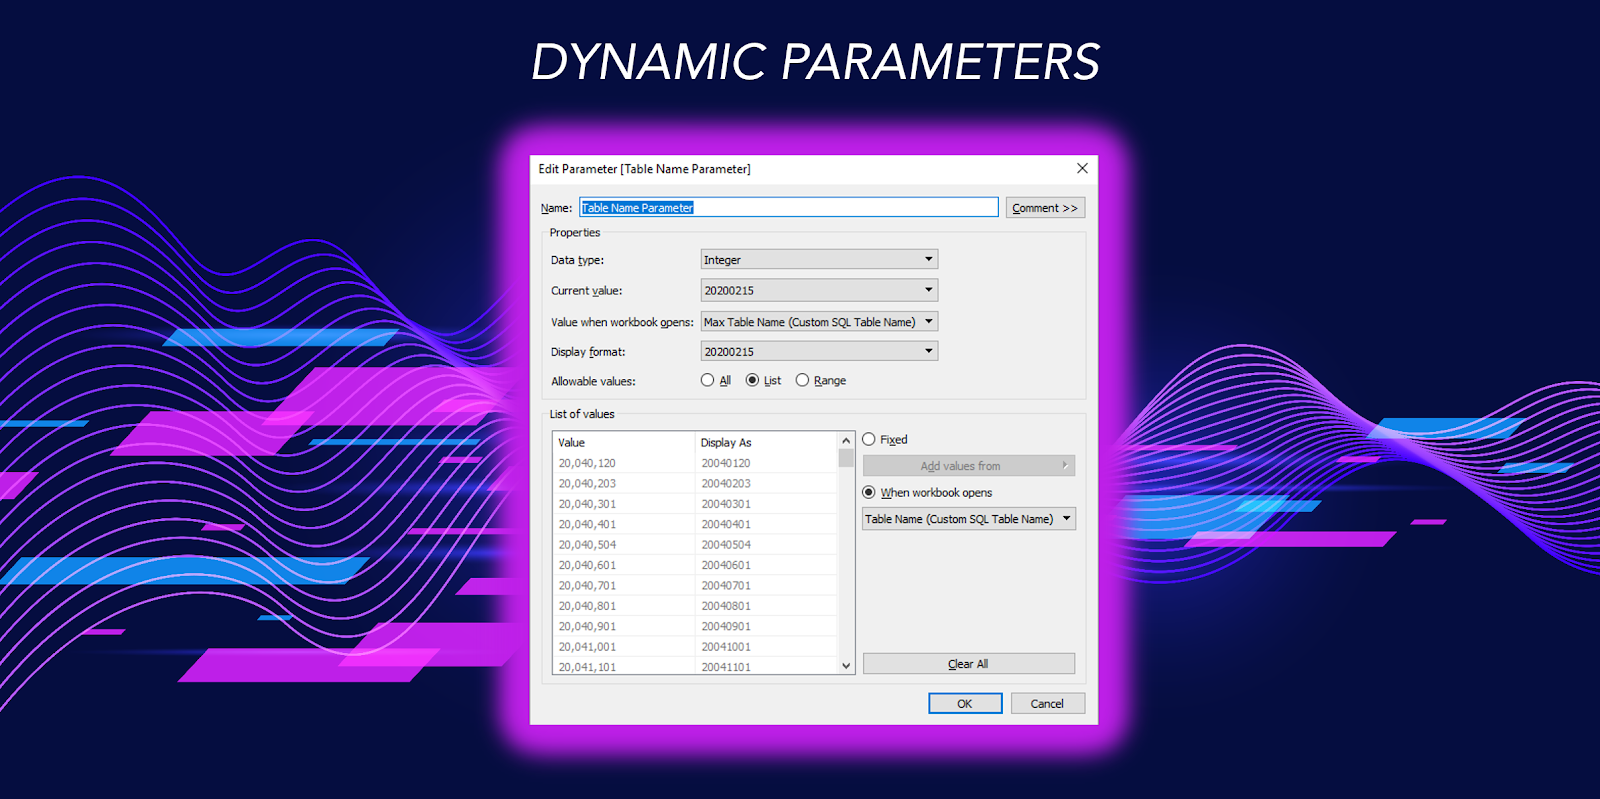 The Key to Dynamic Parameters & Some Good Use Cases